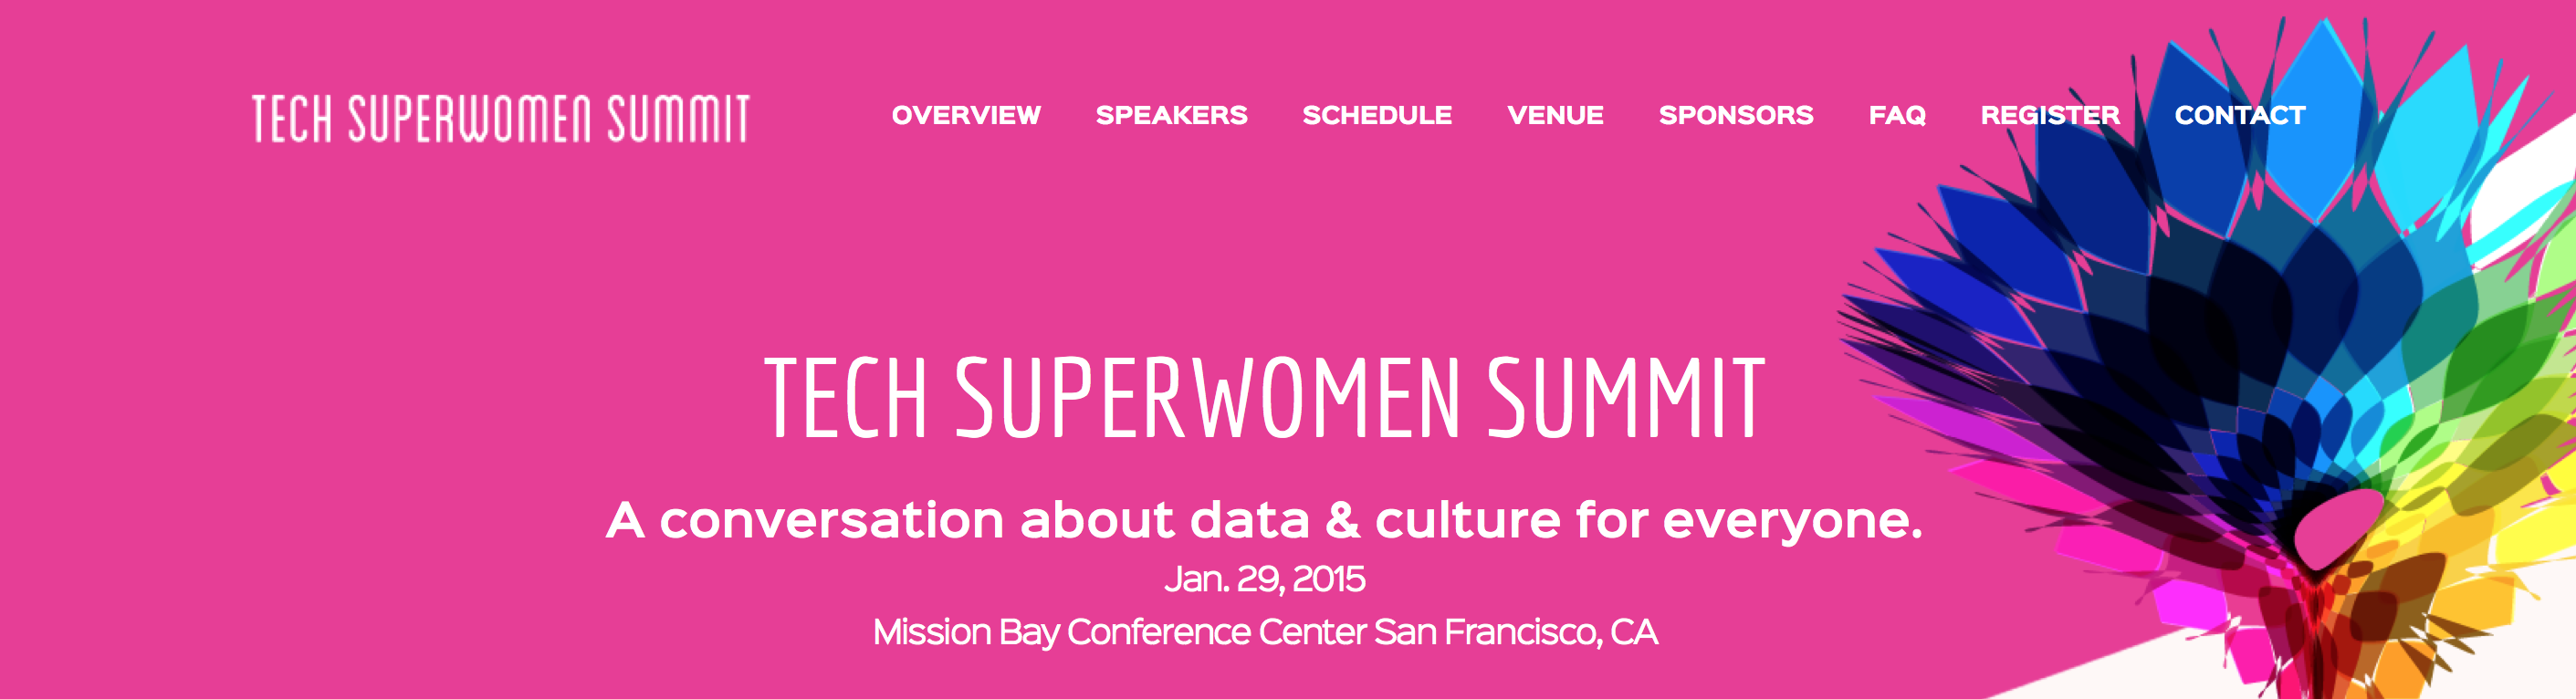 Tech Superwomen Summit Launches